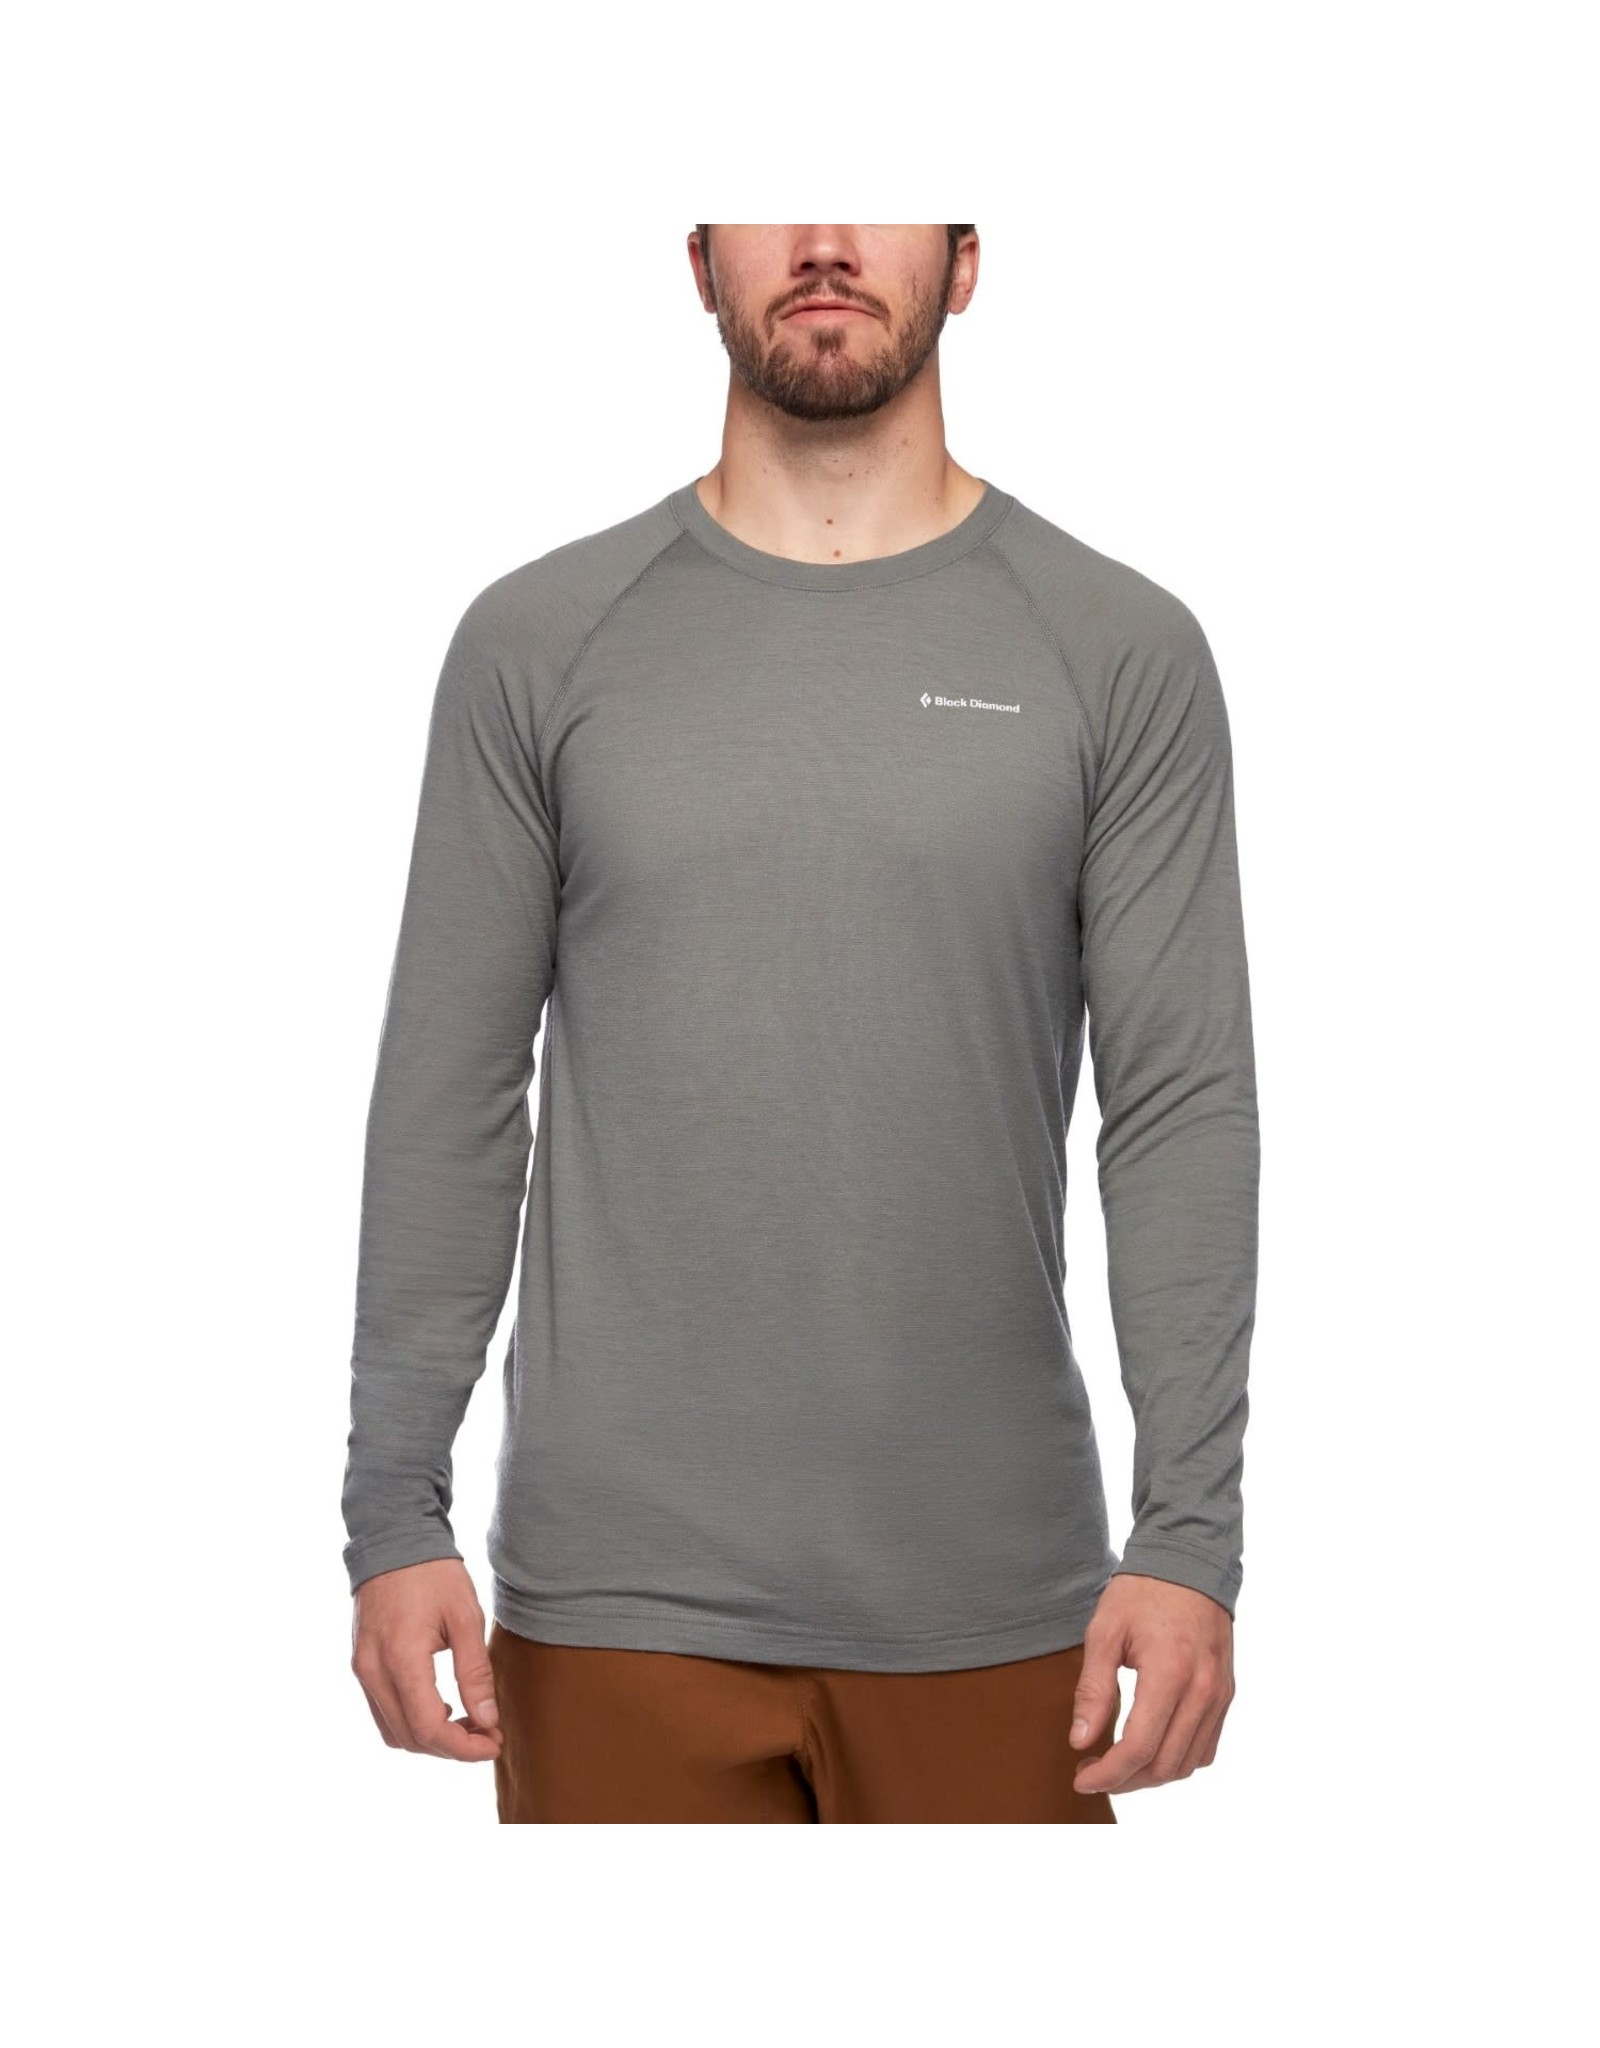 Black Diamond Black Diamond Long Sleeve Rhythm Tee - Men